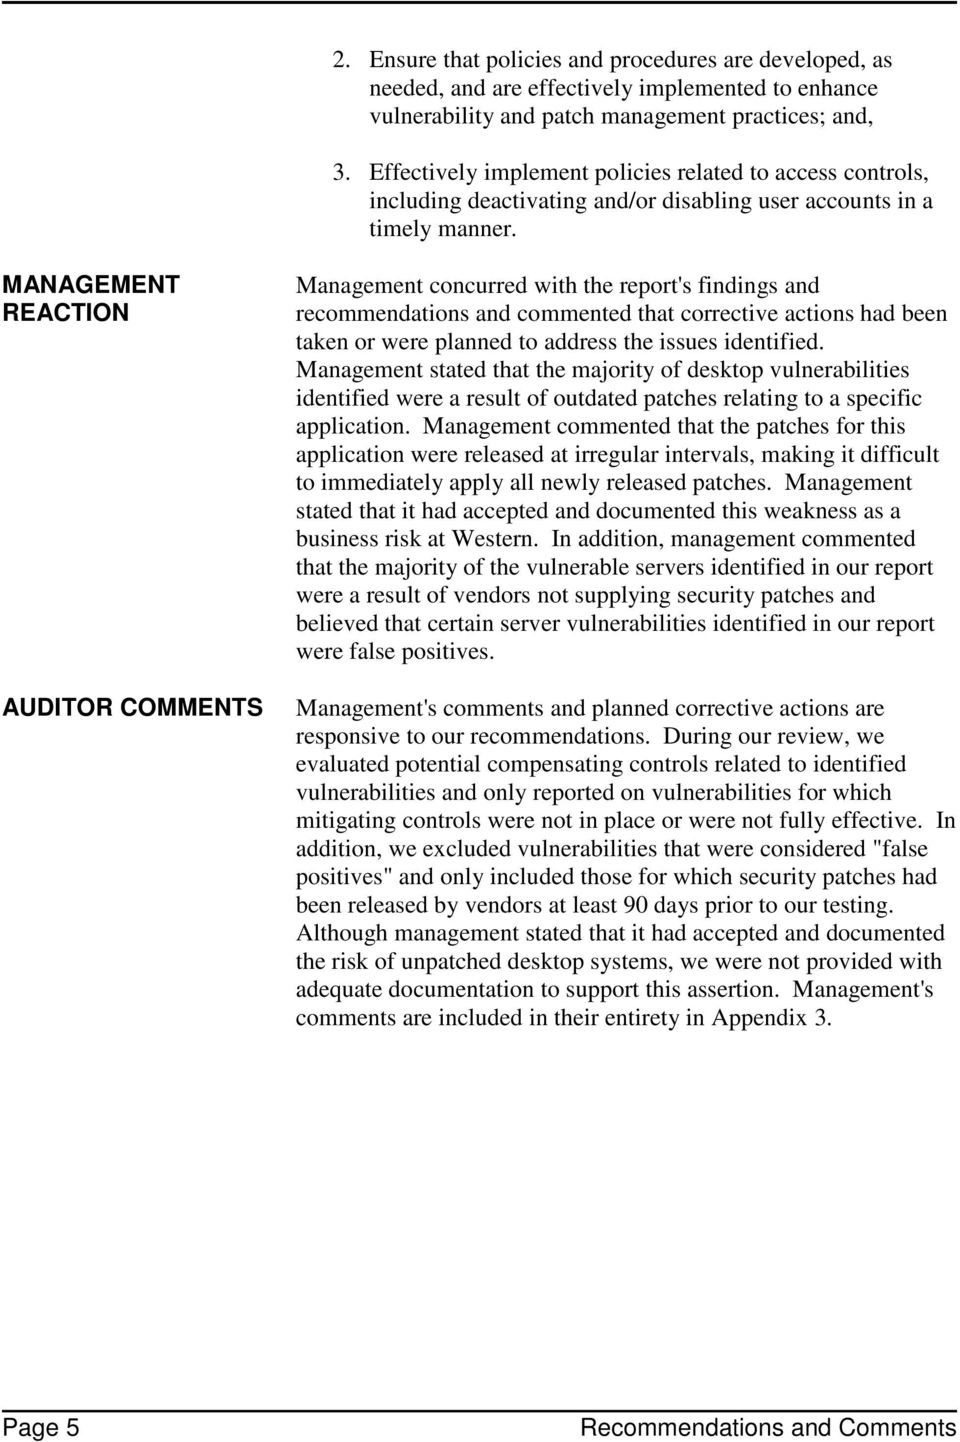 MANAGEMENT REACTION AUDITOR COMMENTS Management concurred with the report's findings and recommendations and commented that corrective actions had been taken or were planned to address the issues